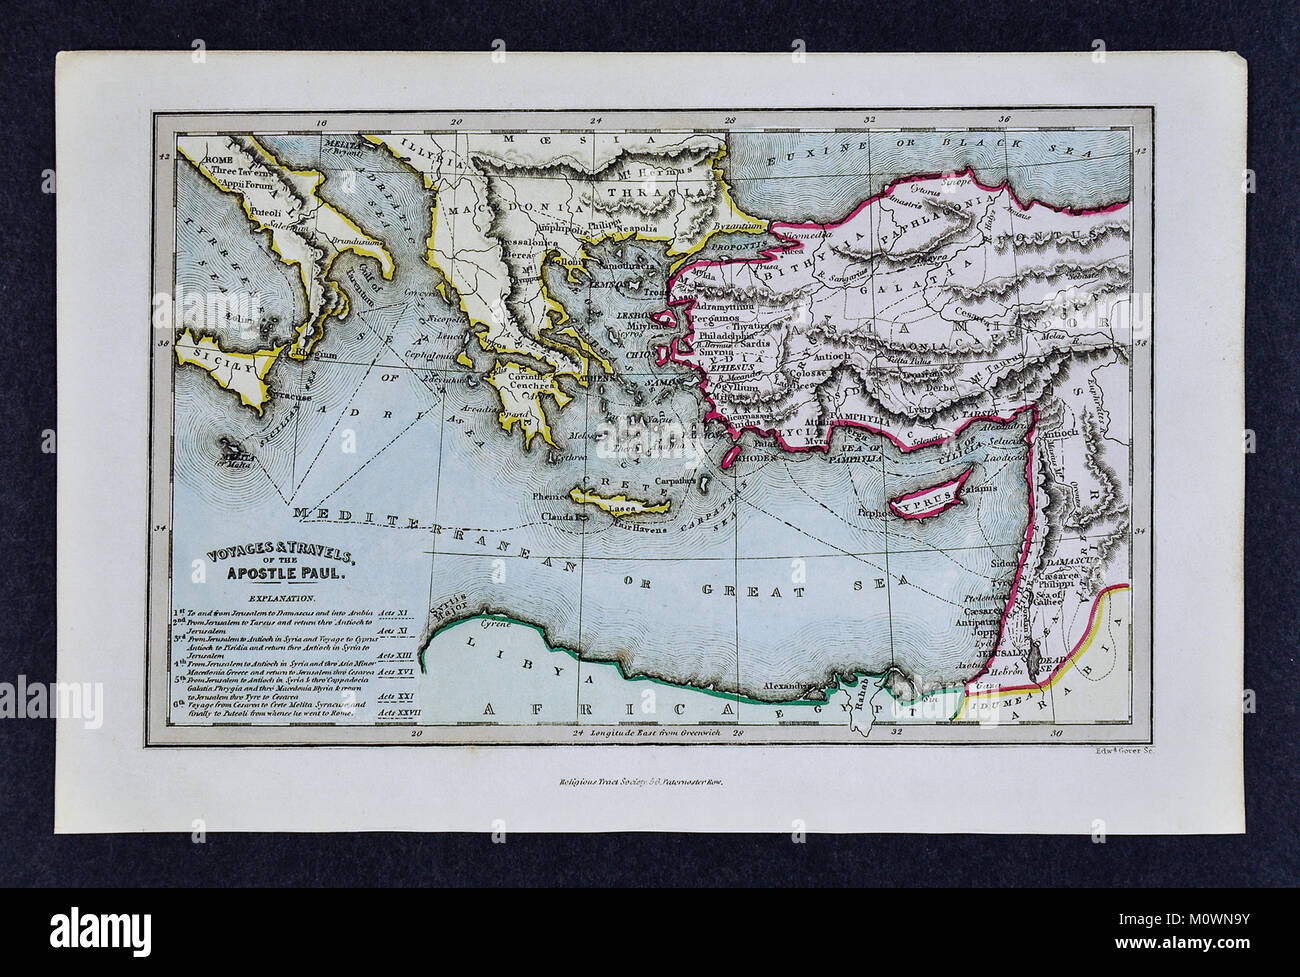 1799 Bible Tract Society Map - The Voyages and Travels of the Apostle Paul in the New Testament Acts - Stock Image